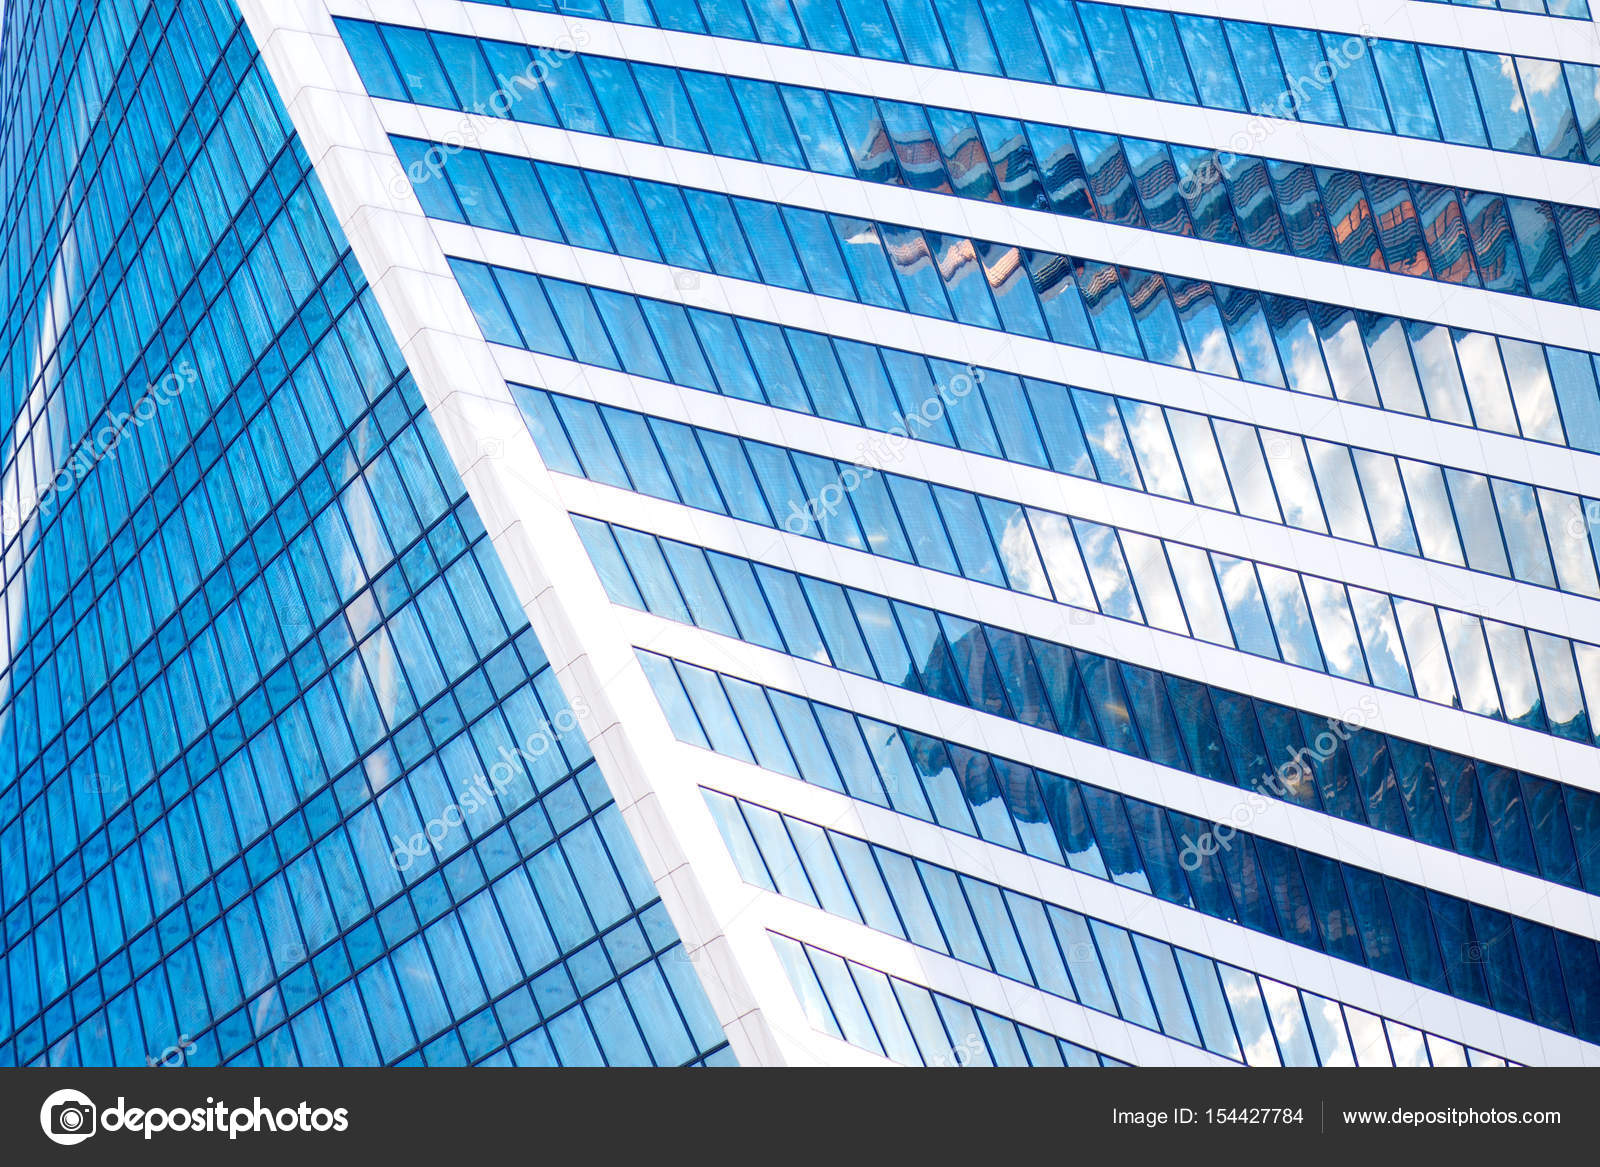 abstract skyscrapers with reflection in windows blue sky white